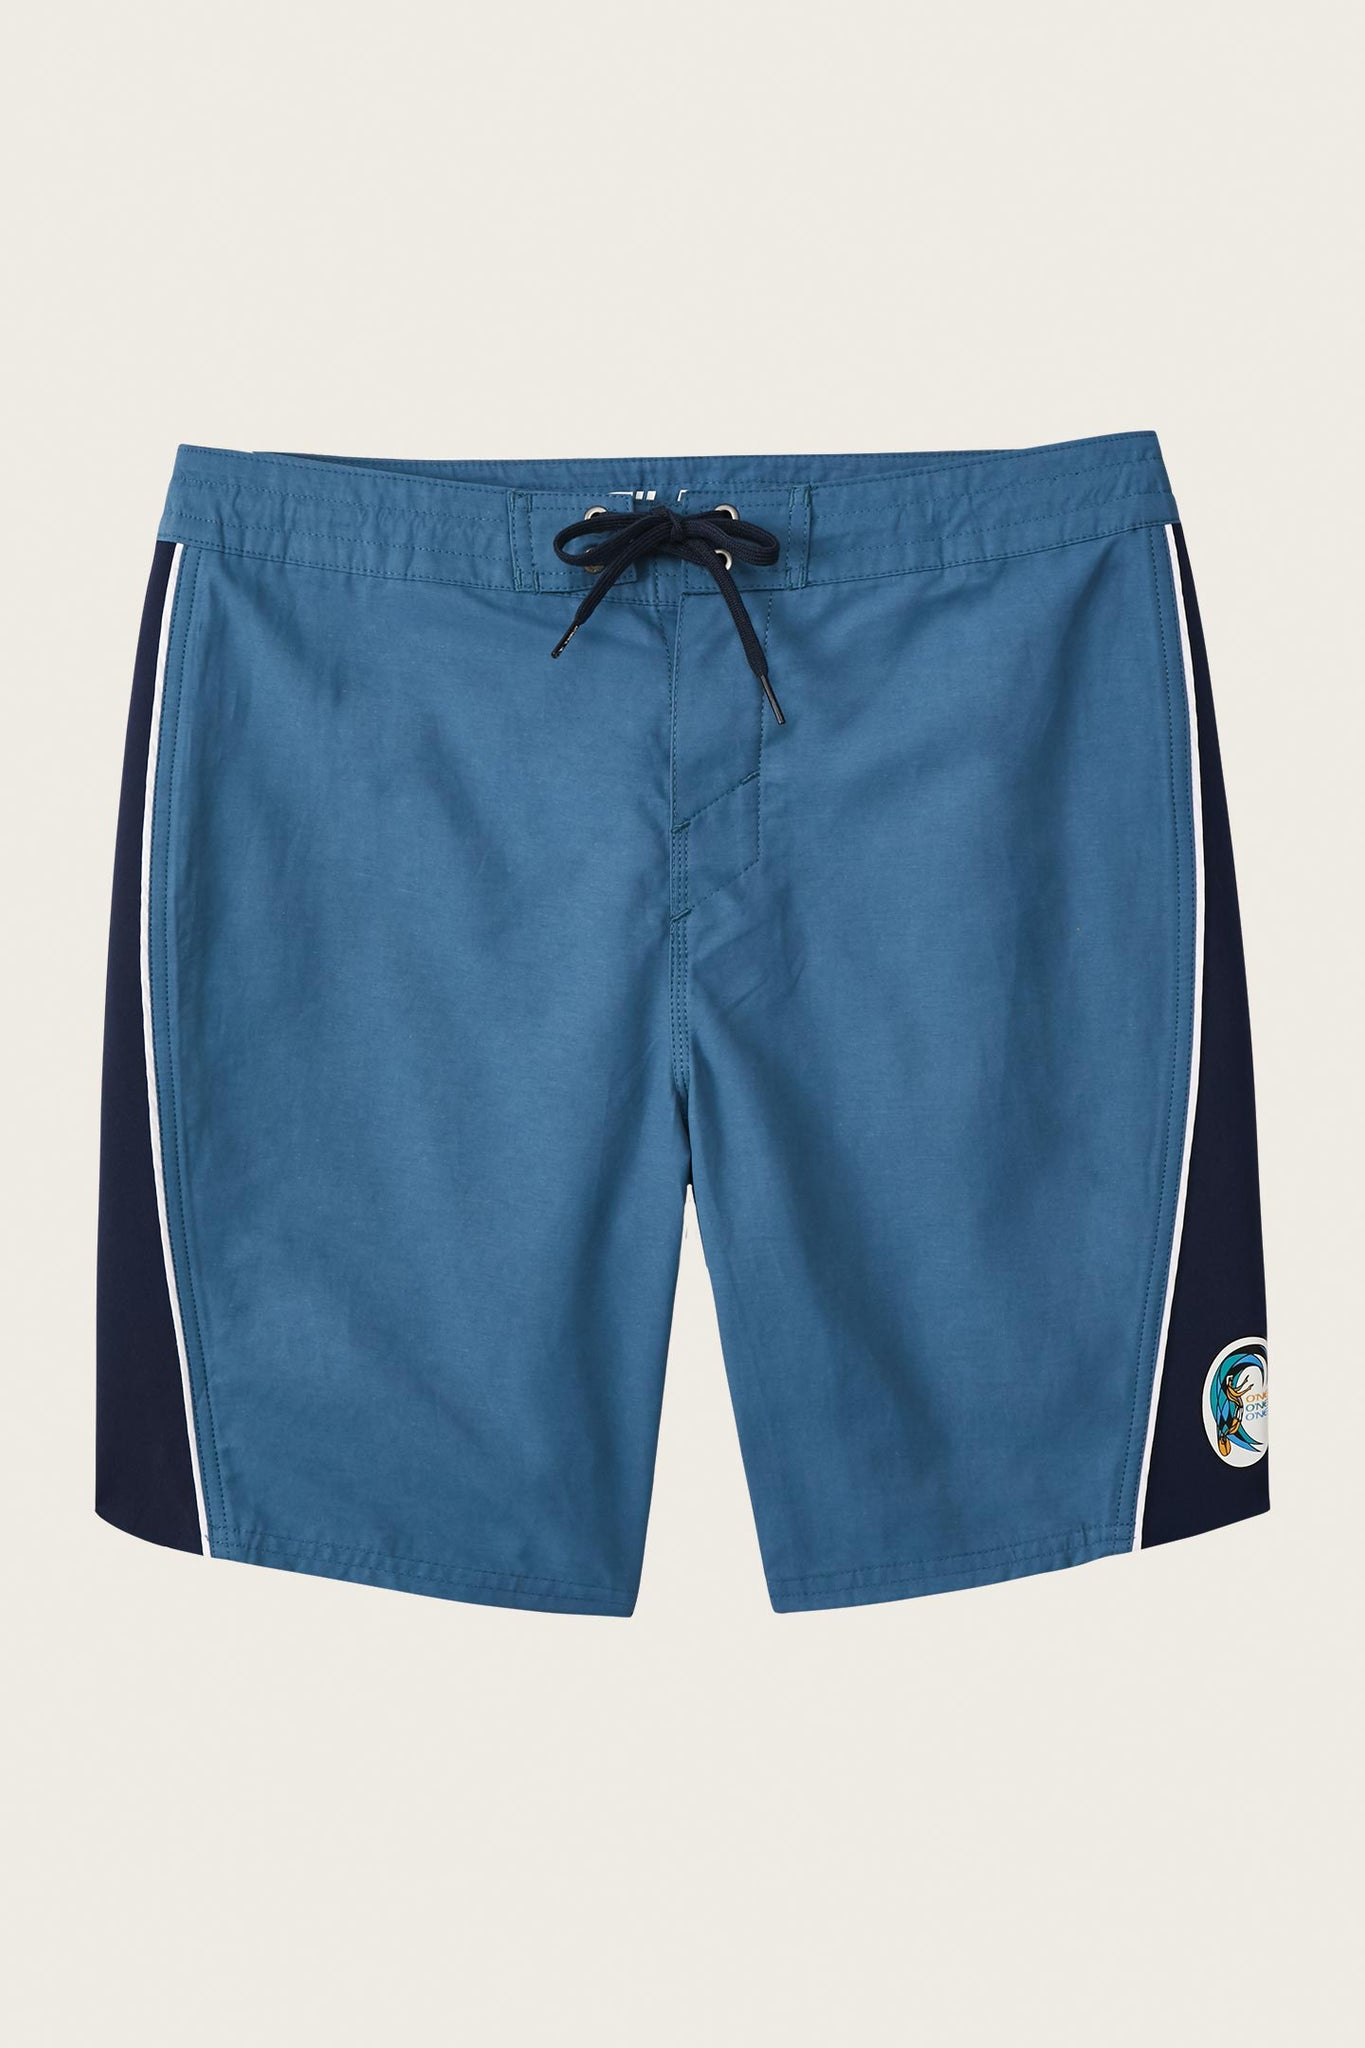 Suntrunk Boardshorts - Brilliant Blue | O'Neill